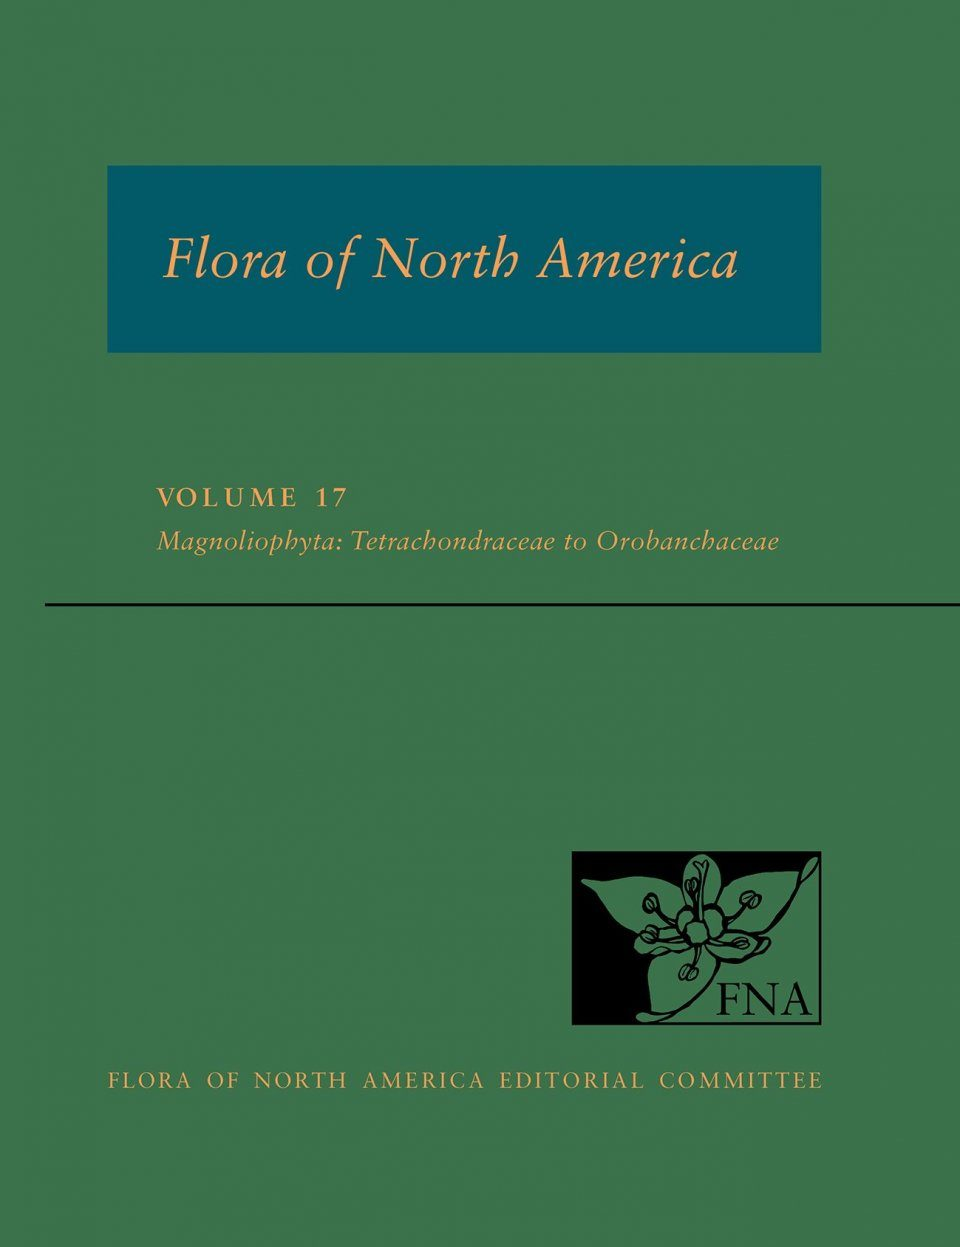 Flora of North America North of Mexico, Volume 17: Magnoliophyta: Tetrachondraceae to Orbobanchaceae